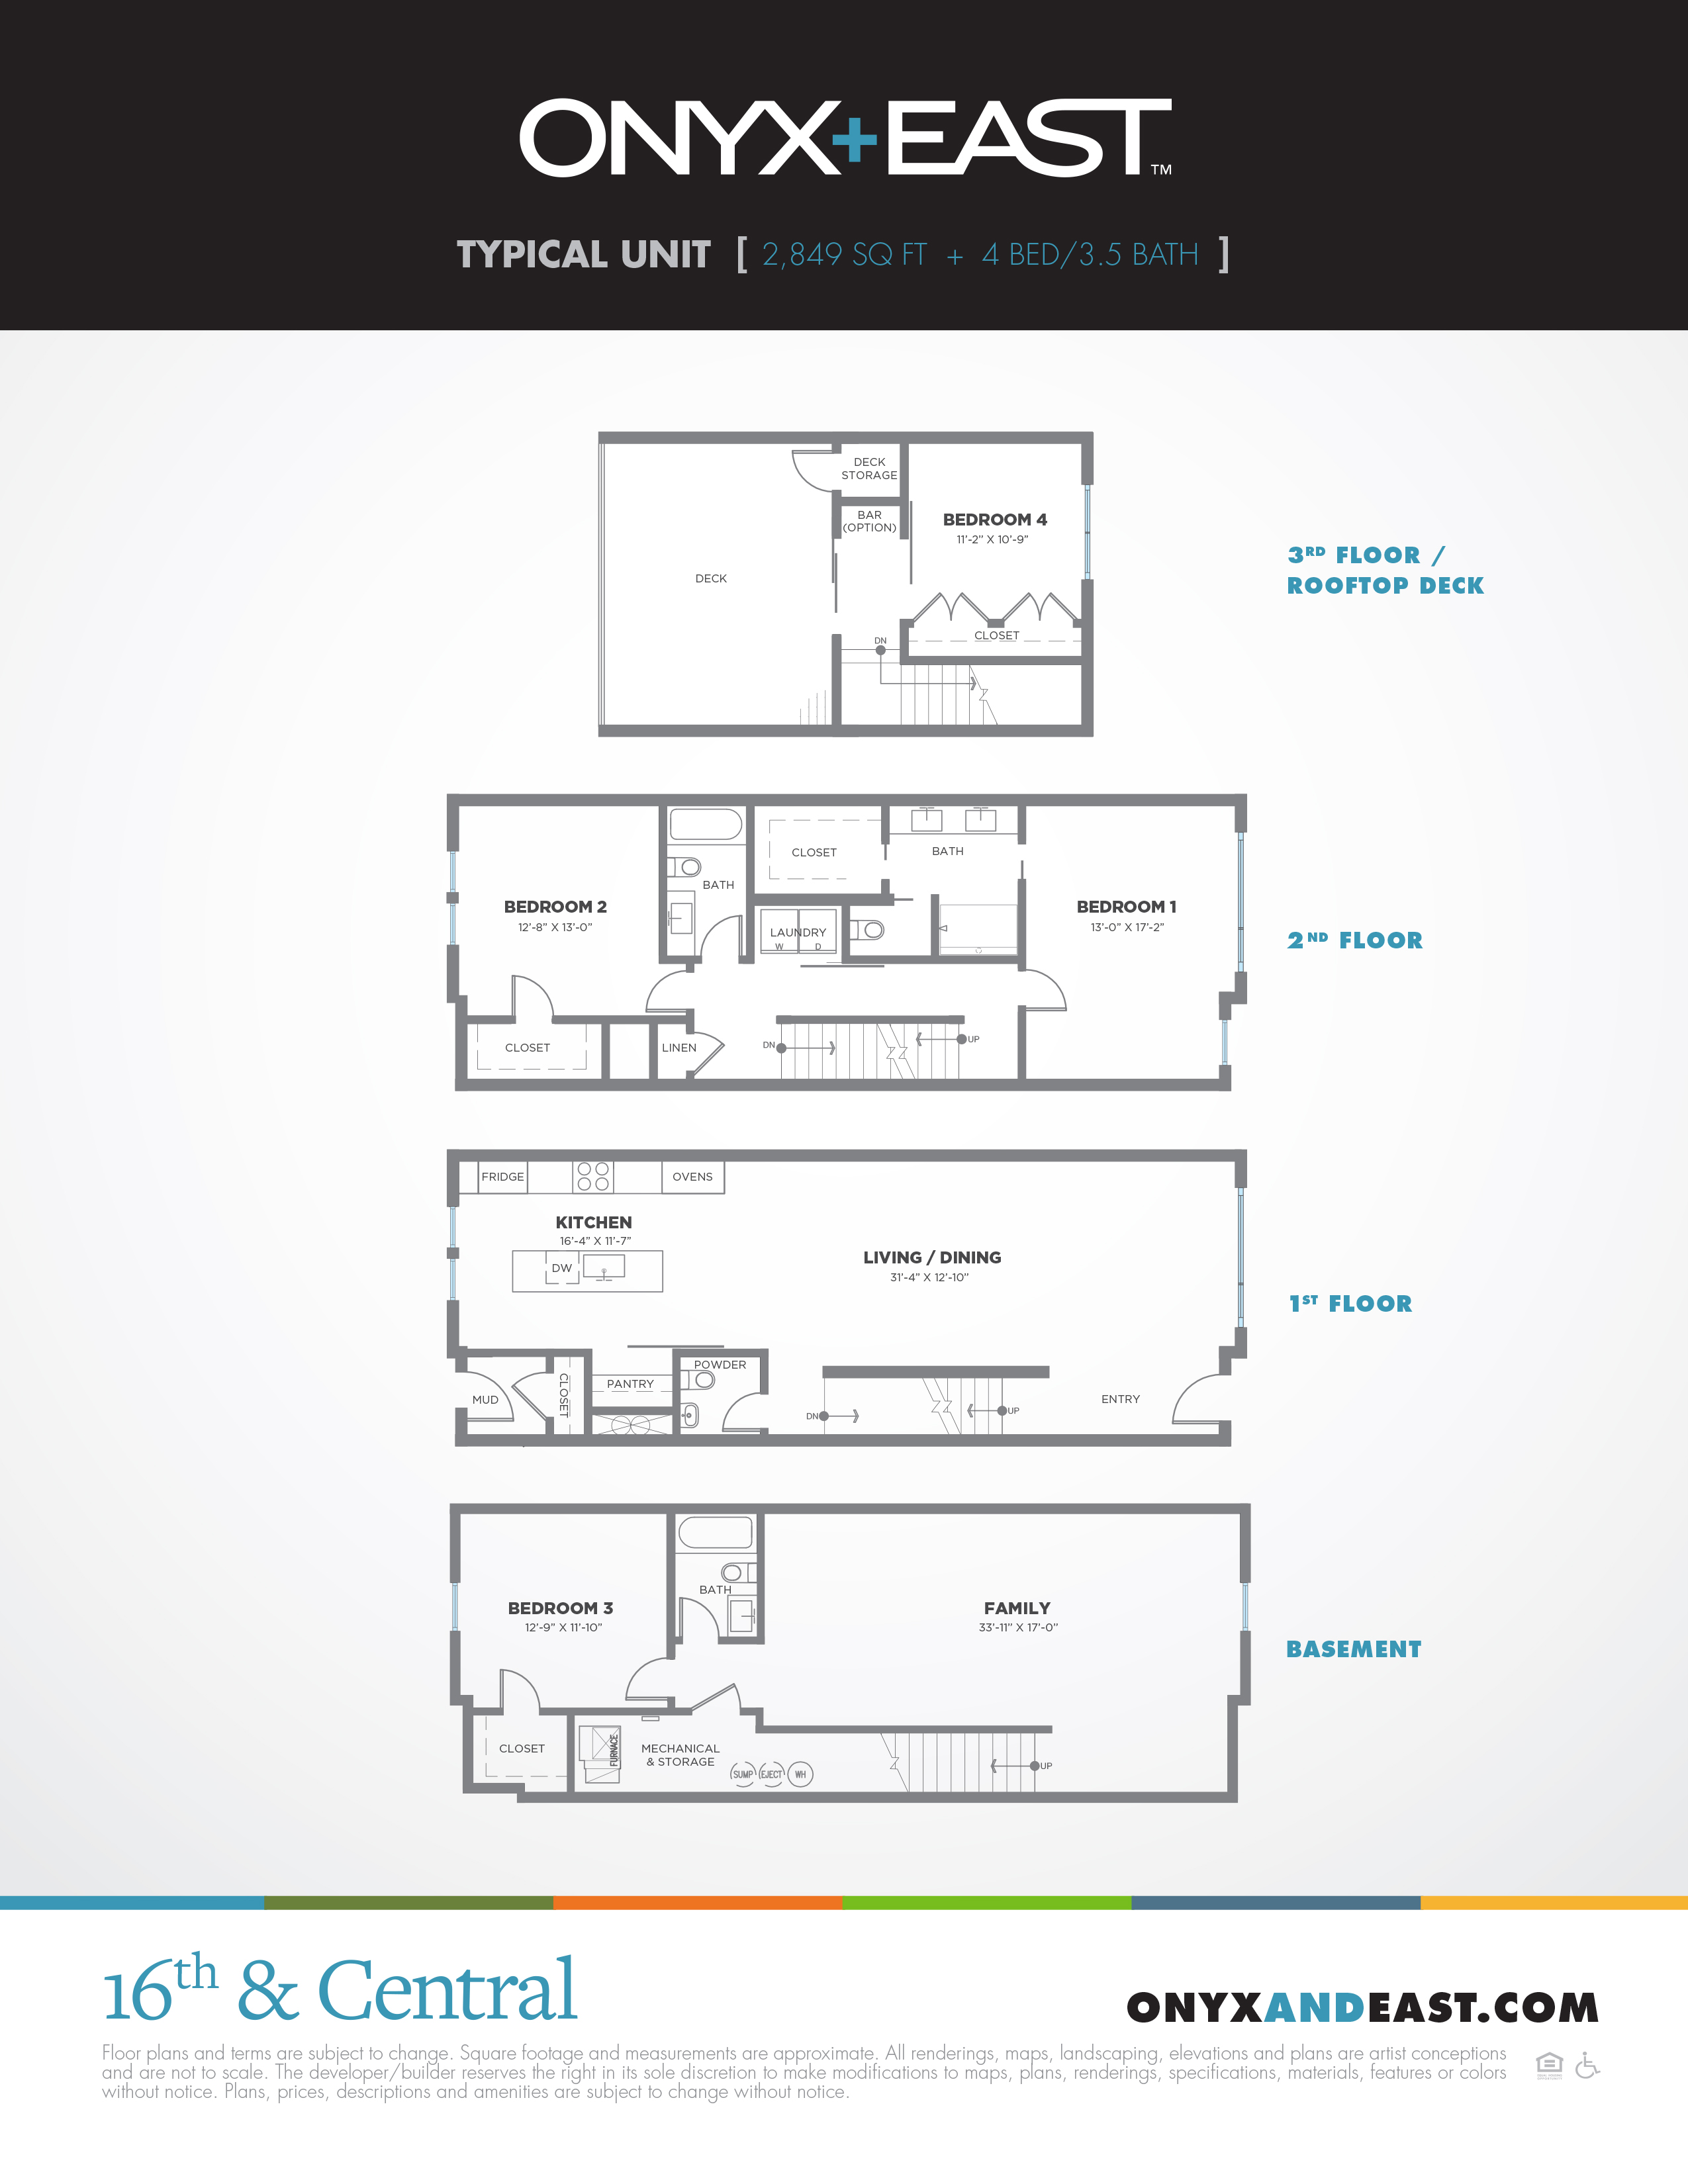 Onyx+East Floorplans